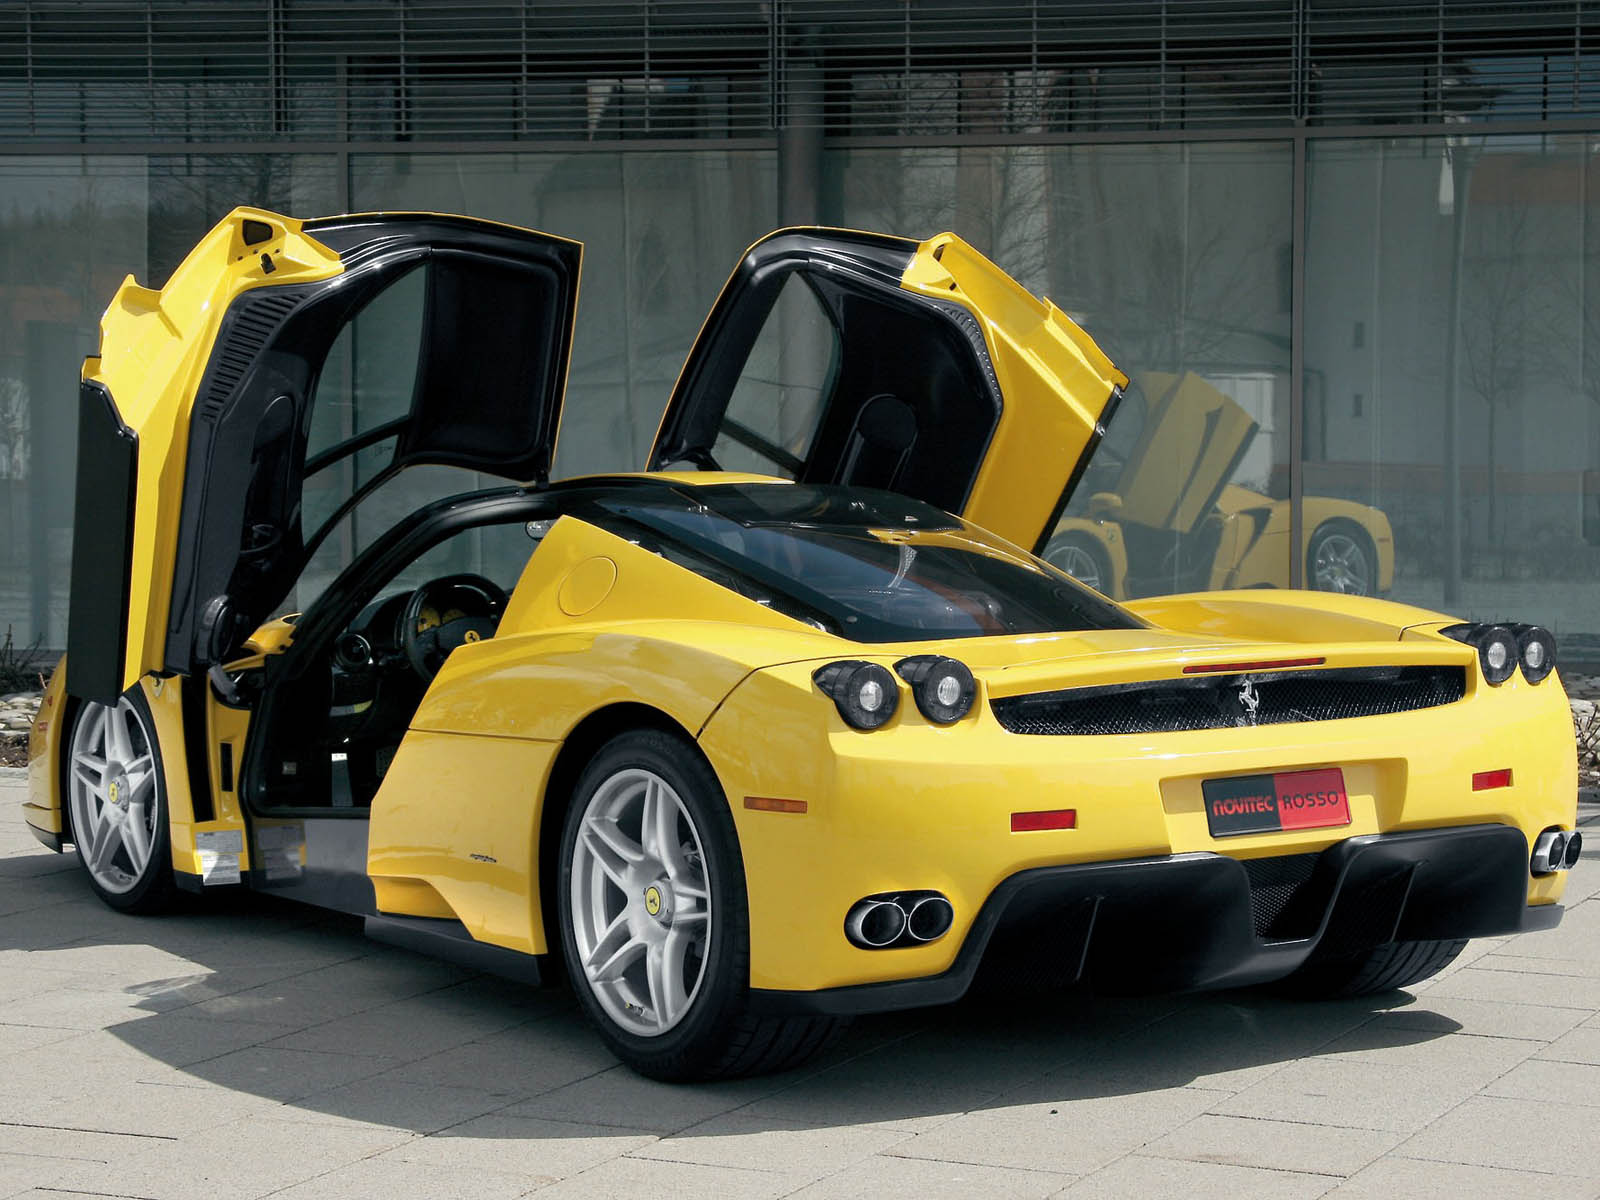 Ferrari Enzo Super Car – More Krash Dummies Please